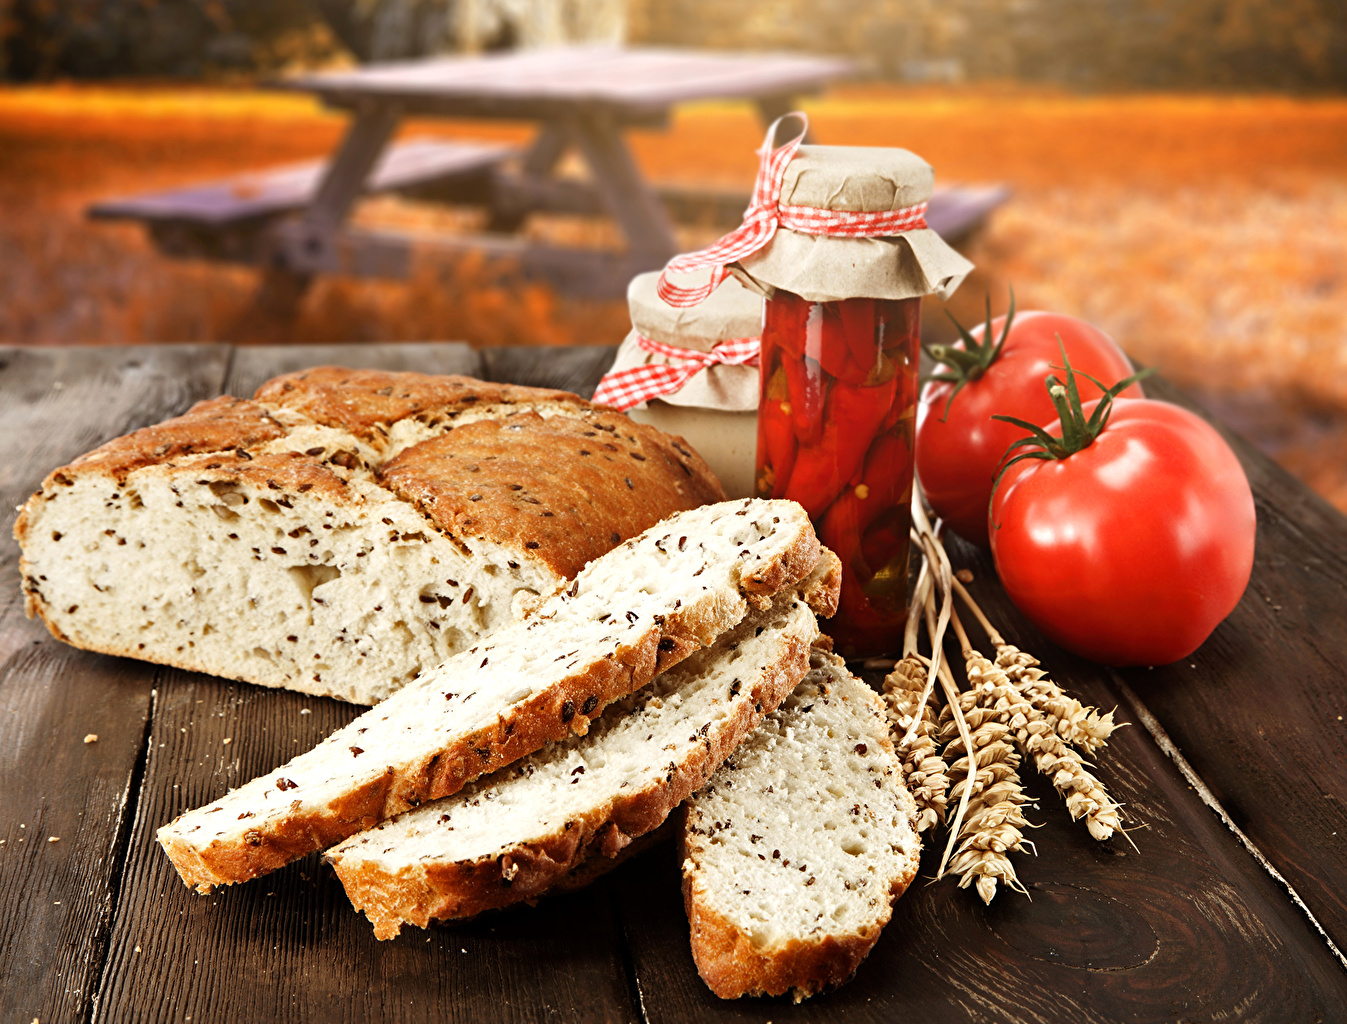 Pictures Tomatoes Jar Bread spikes Food Still-life spike Ear botany